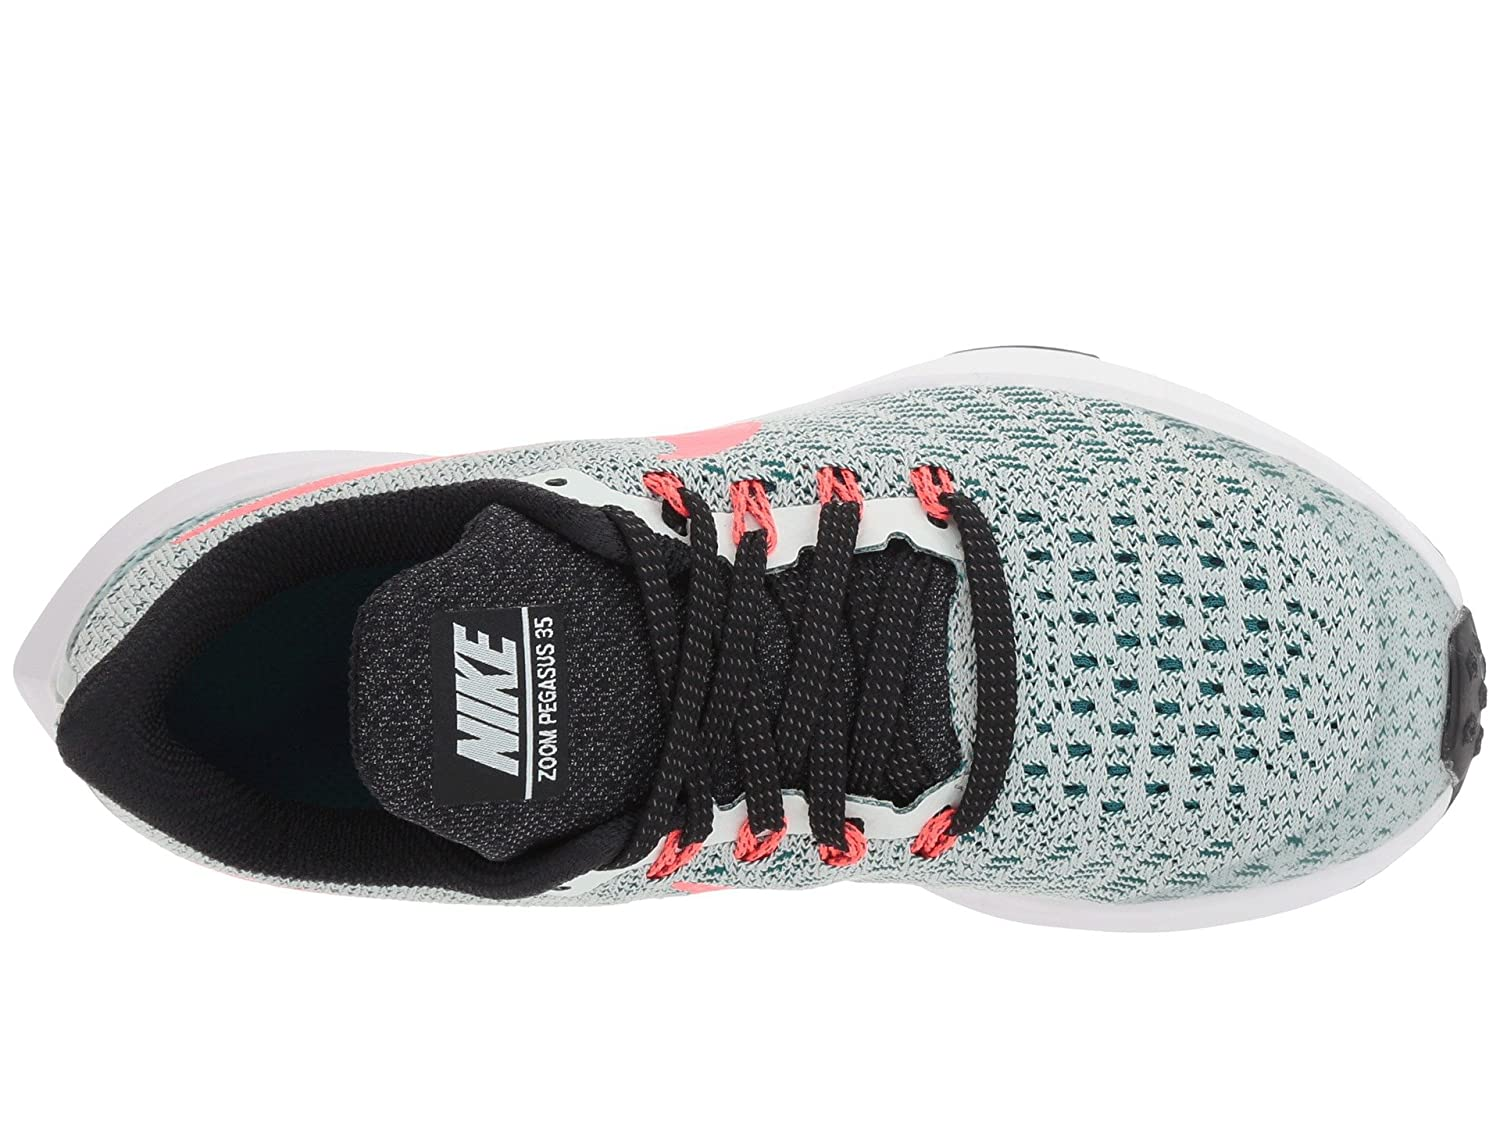 quality design f0c84 cb3ff Nike Air Zoom Pegasus 35 (GS), Chaussures de Running Compétition Homme,  Multicolore (Barely Grey Hot Punch Geode Teal Black 004) 38.5 EU   Amazon.fr  ...